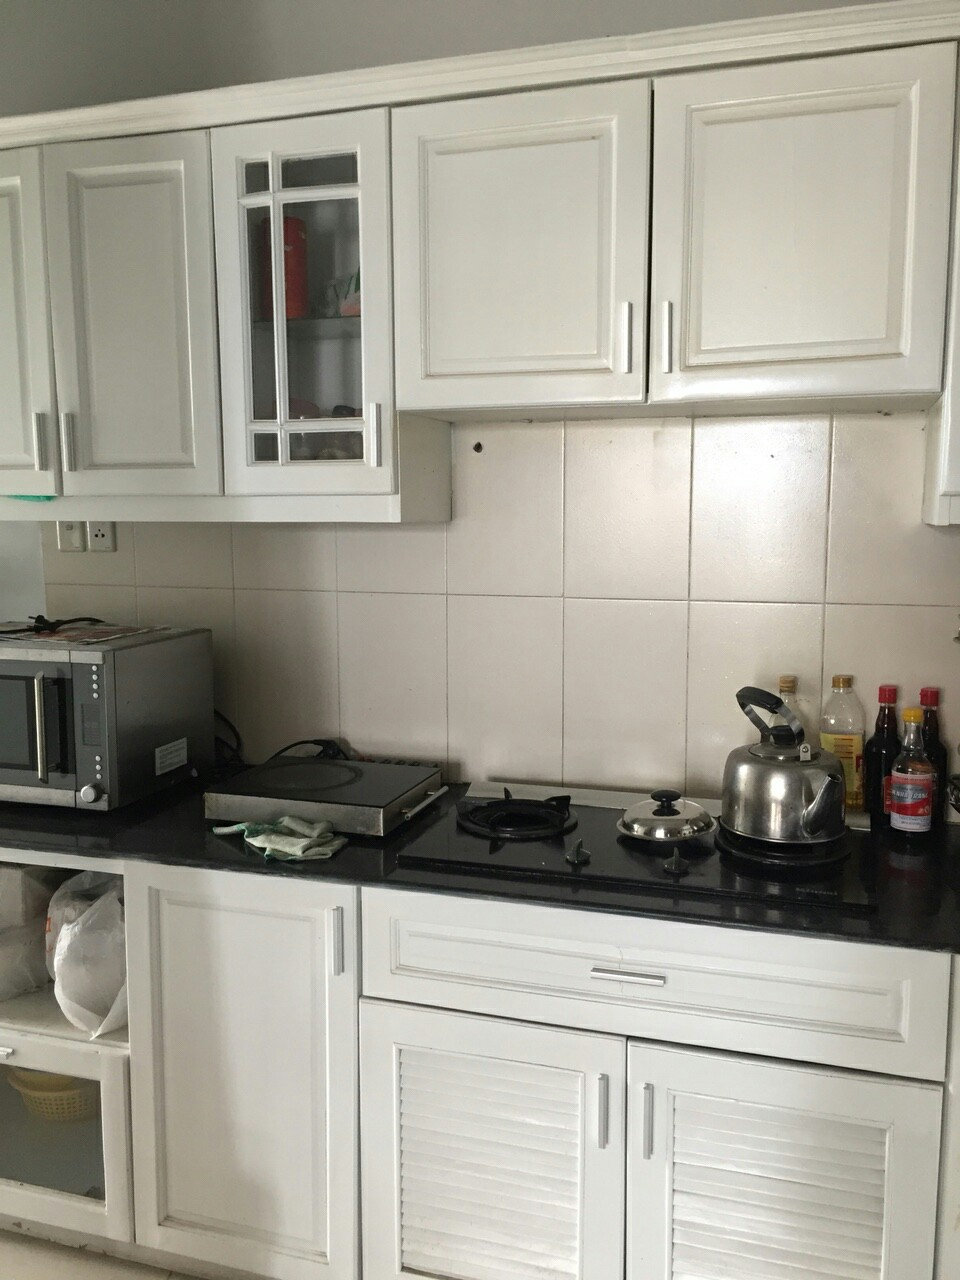 rent Minh Thanh - 2 bedroom